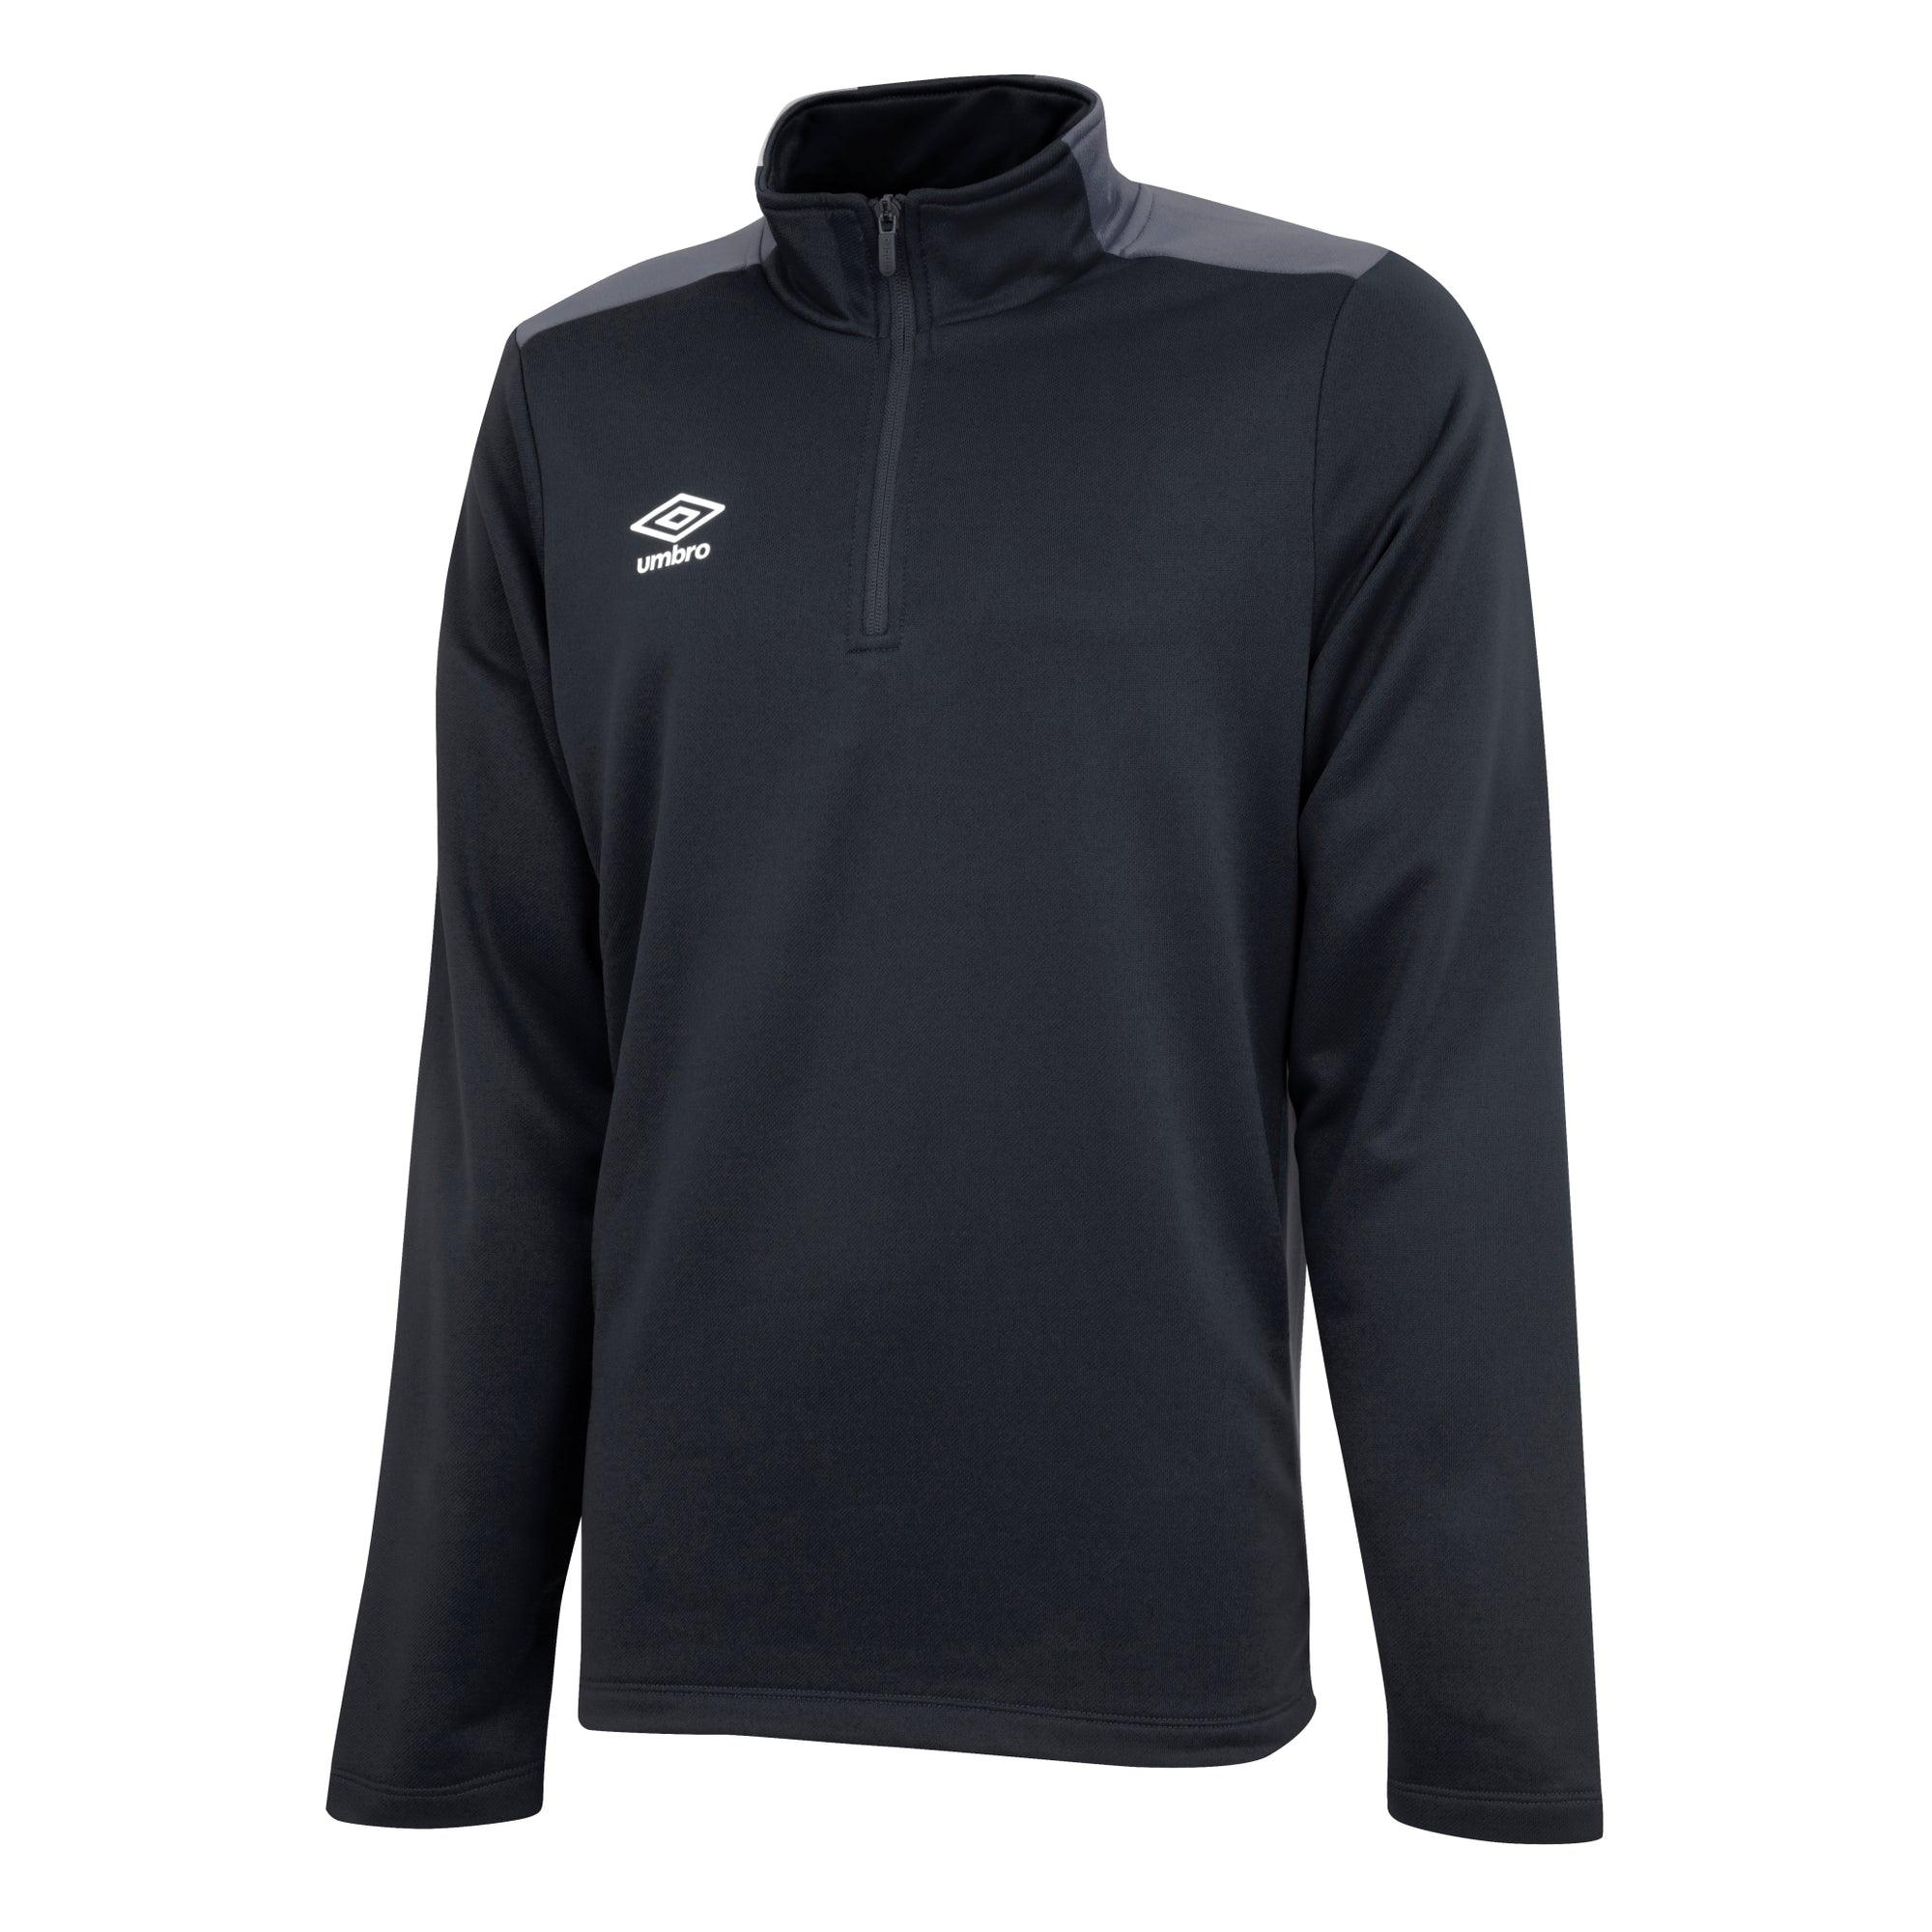 Umbro half zip top in black/carbon.